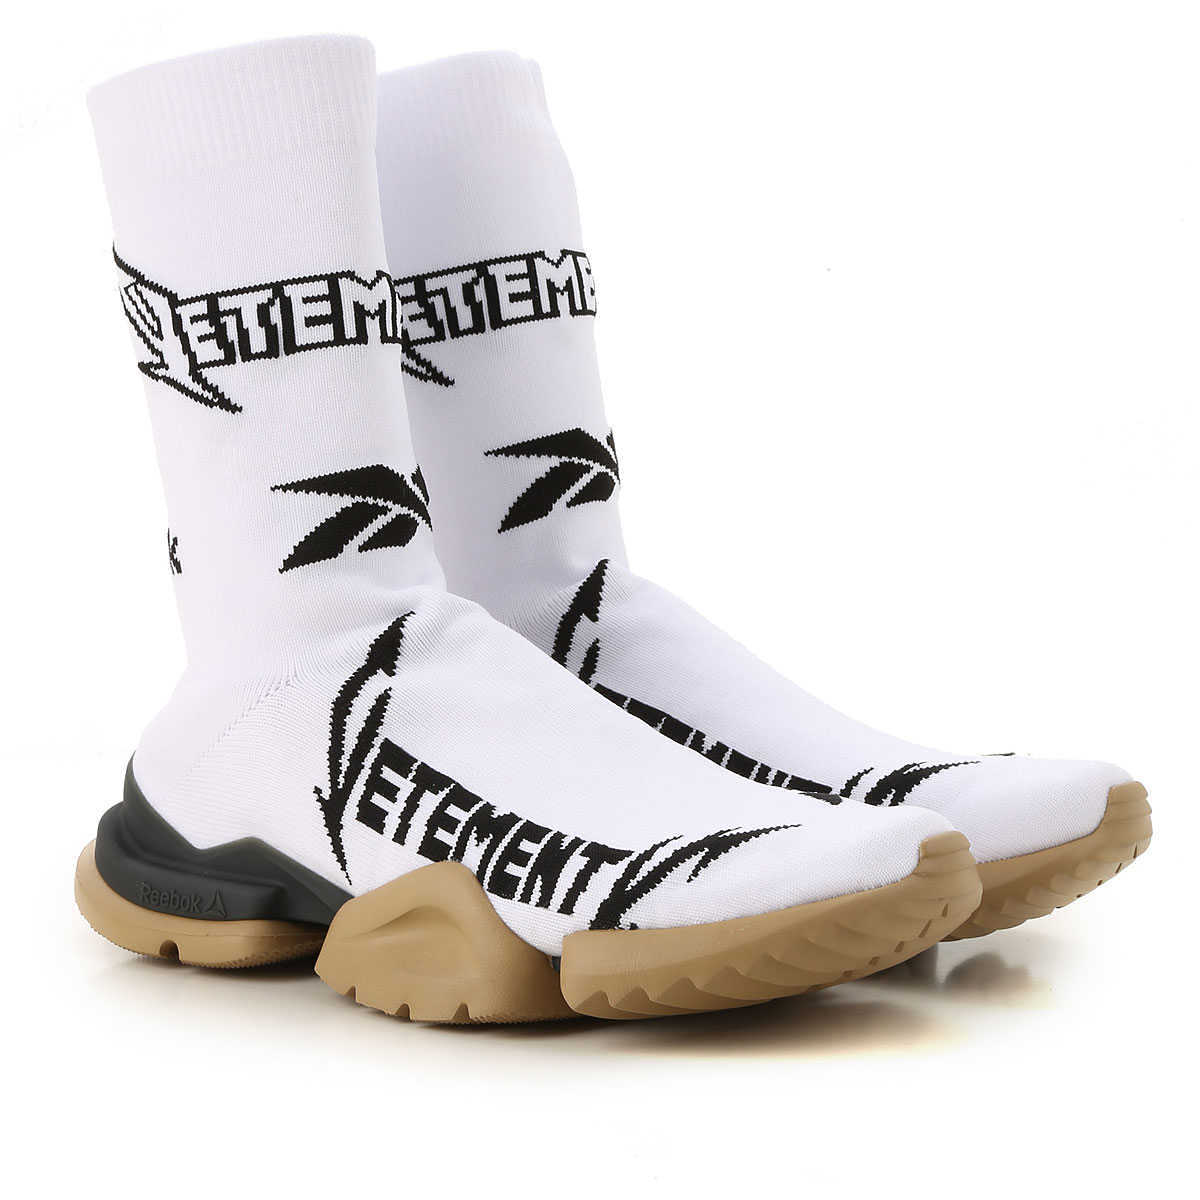 Vetements Sneakers for Men On Sale in Outlet White UK - GOOFASH